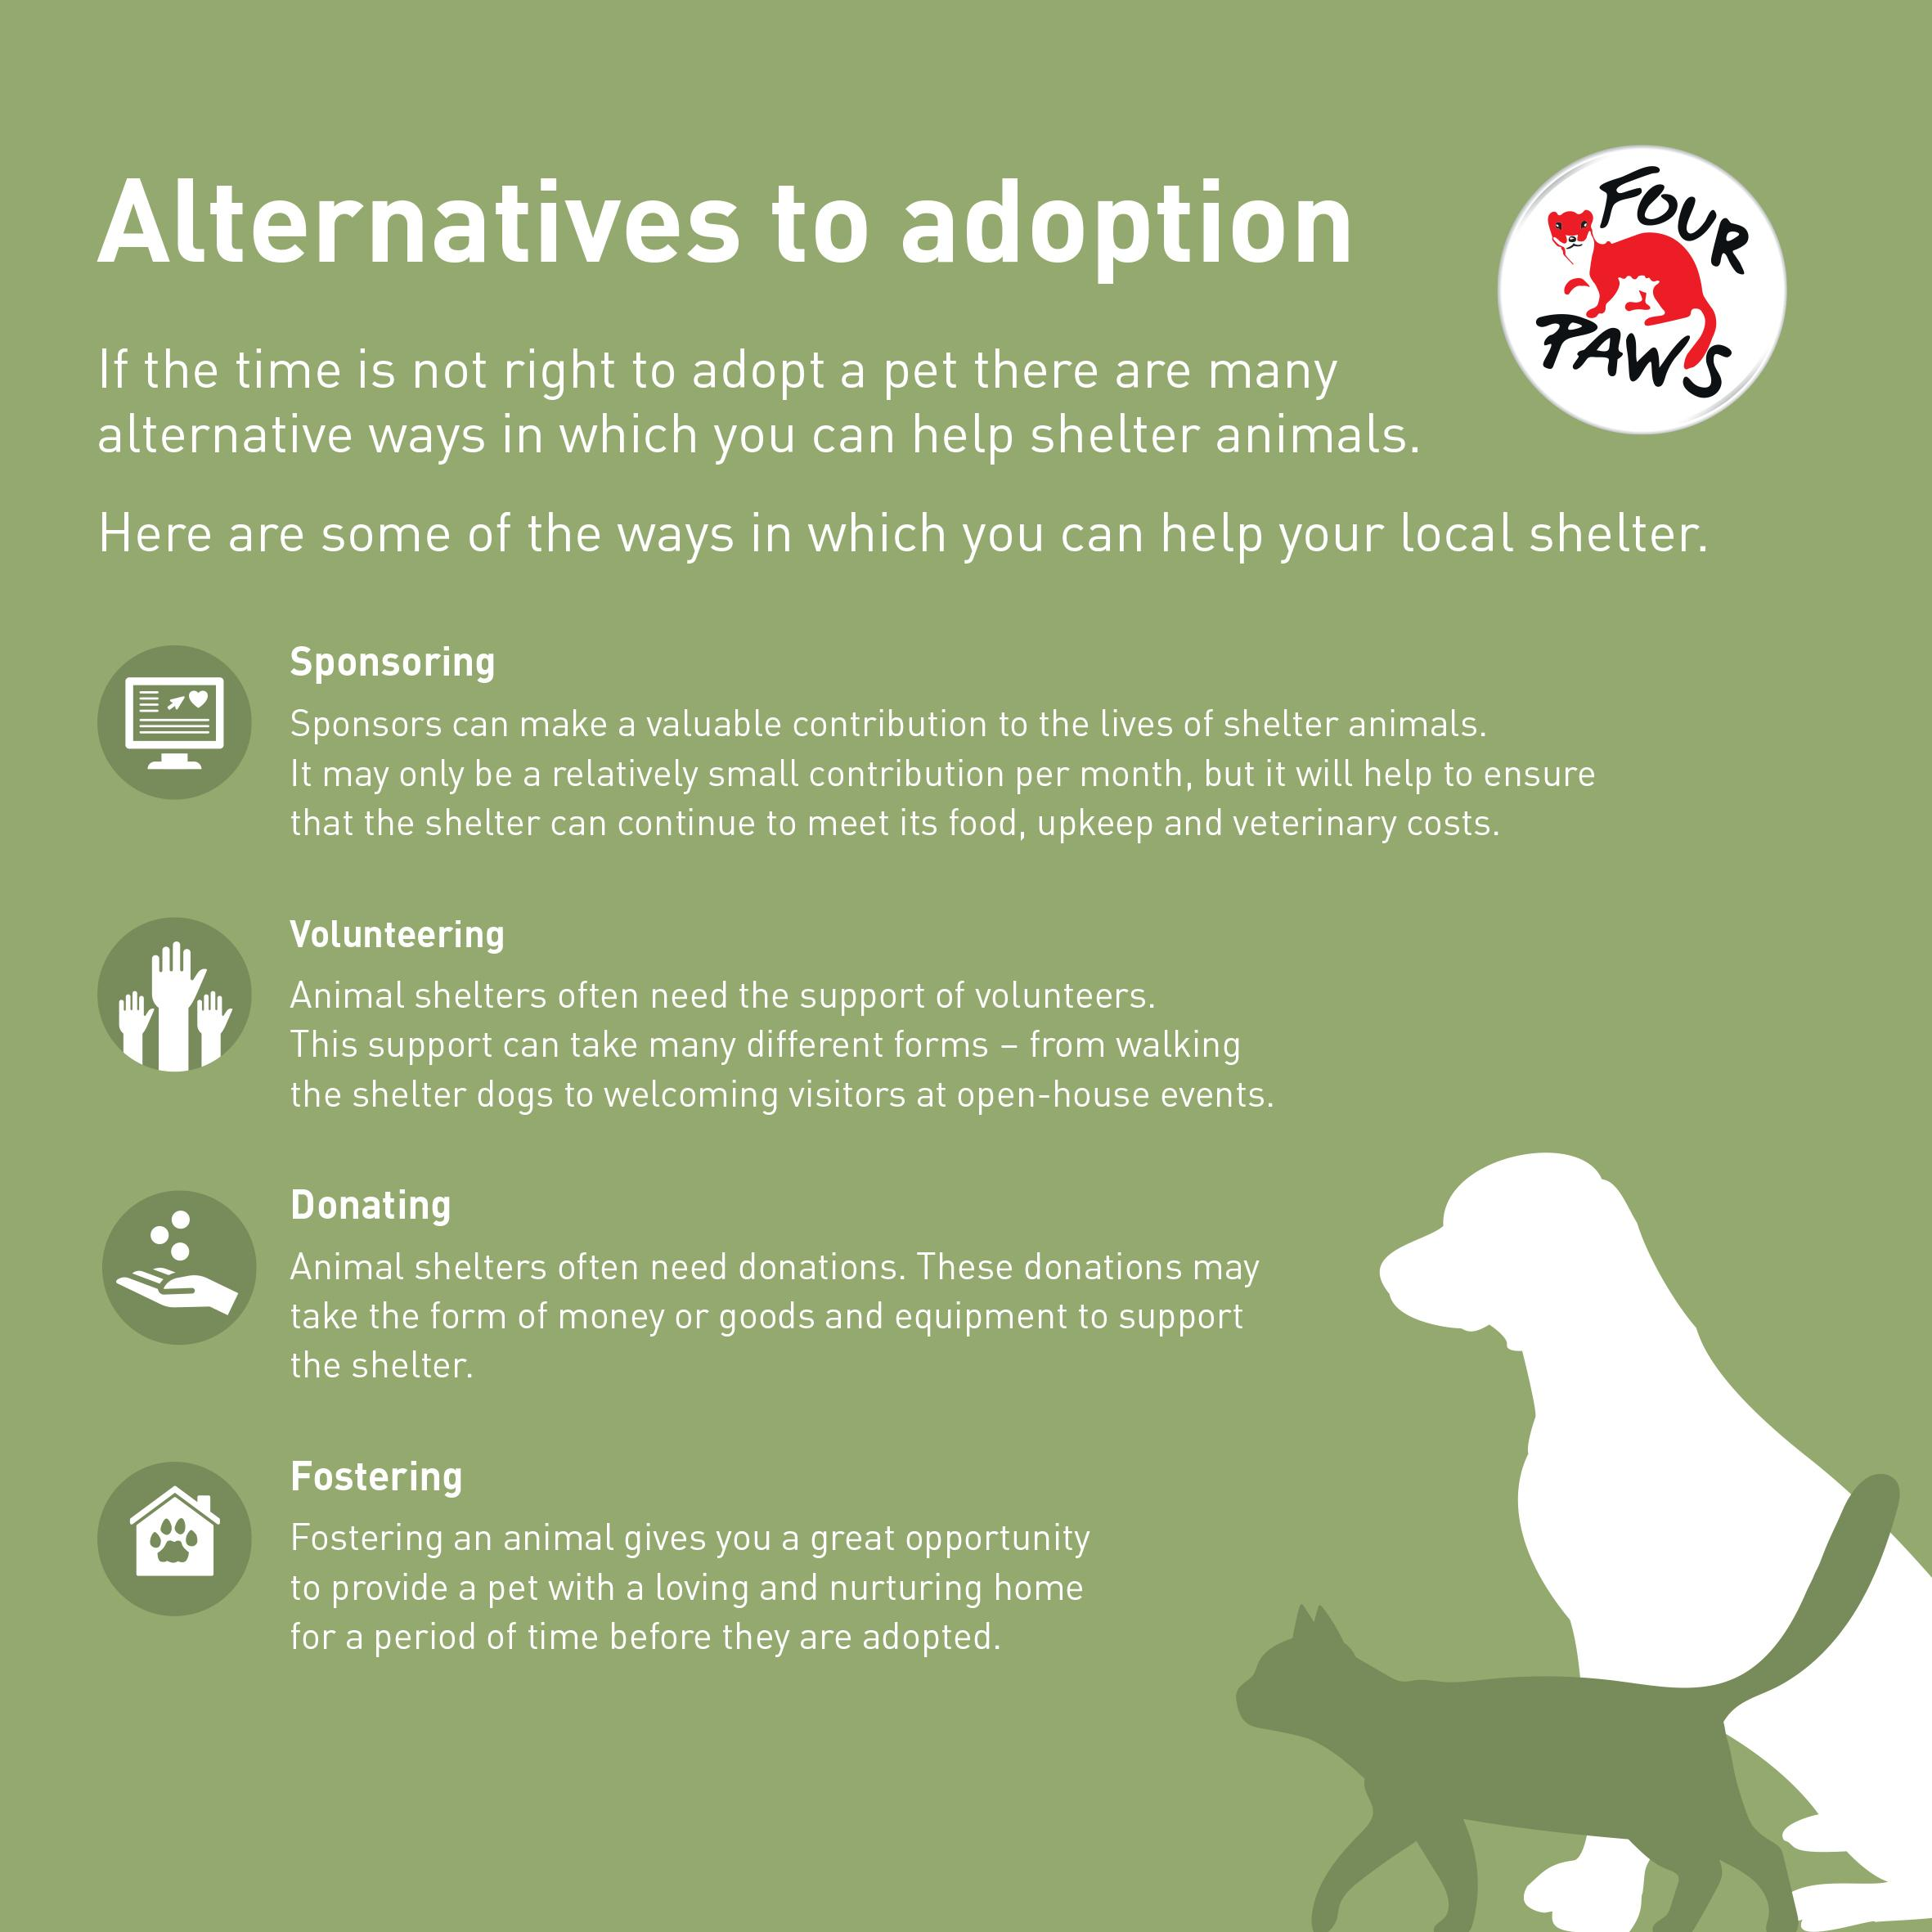 Alternatives to Adoption